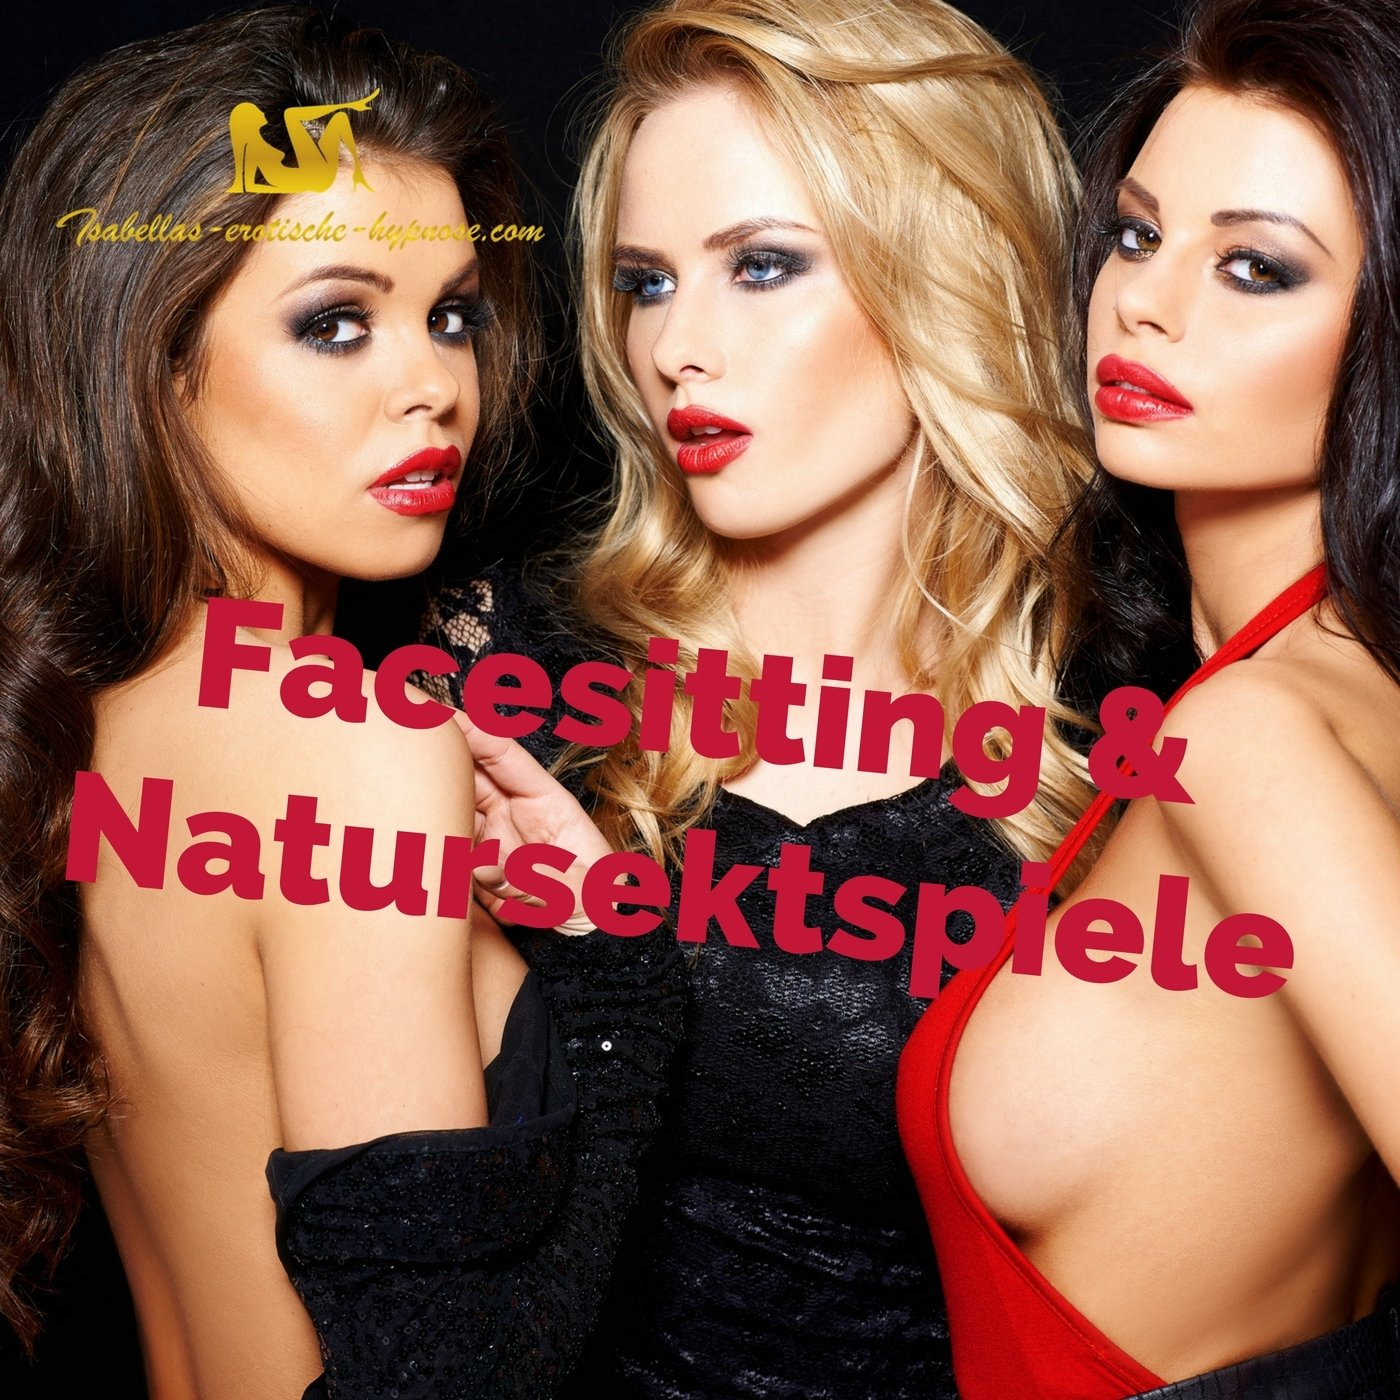 Facesitting und Natursektspiele by Lady Isabella